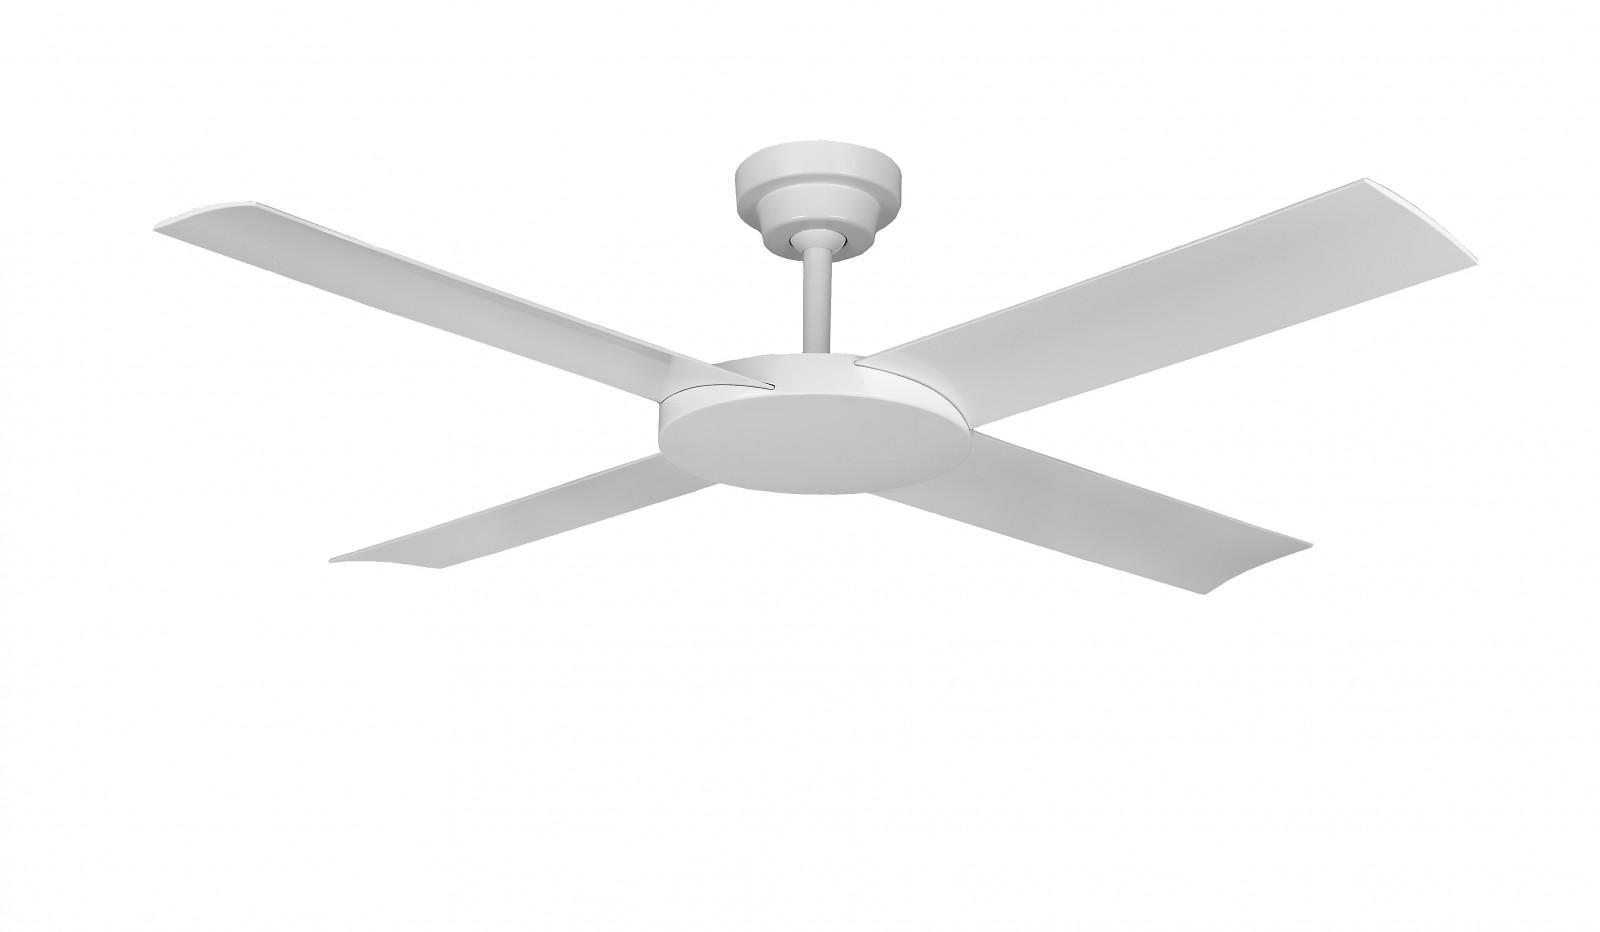 Outdoor Ceiling Fan Revolution White With Remote Control